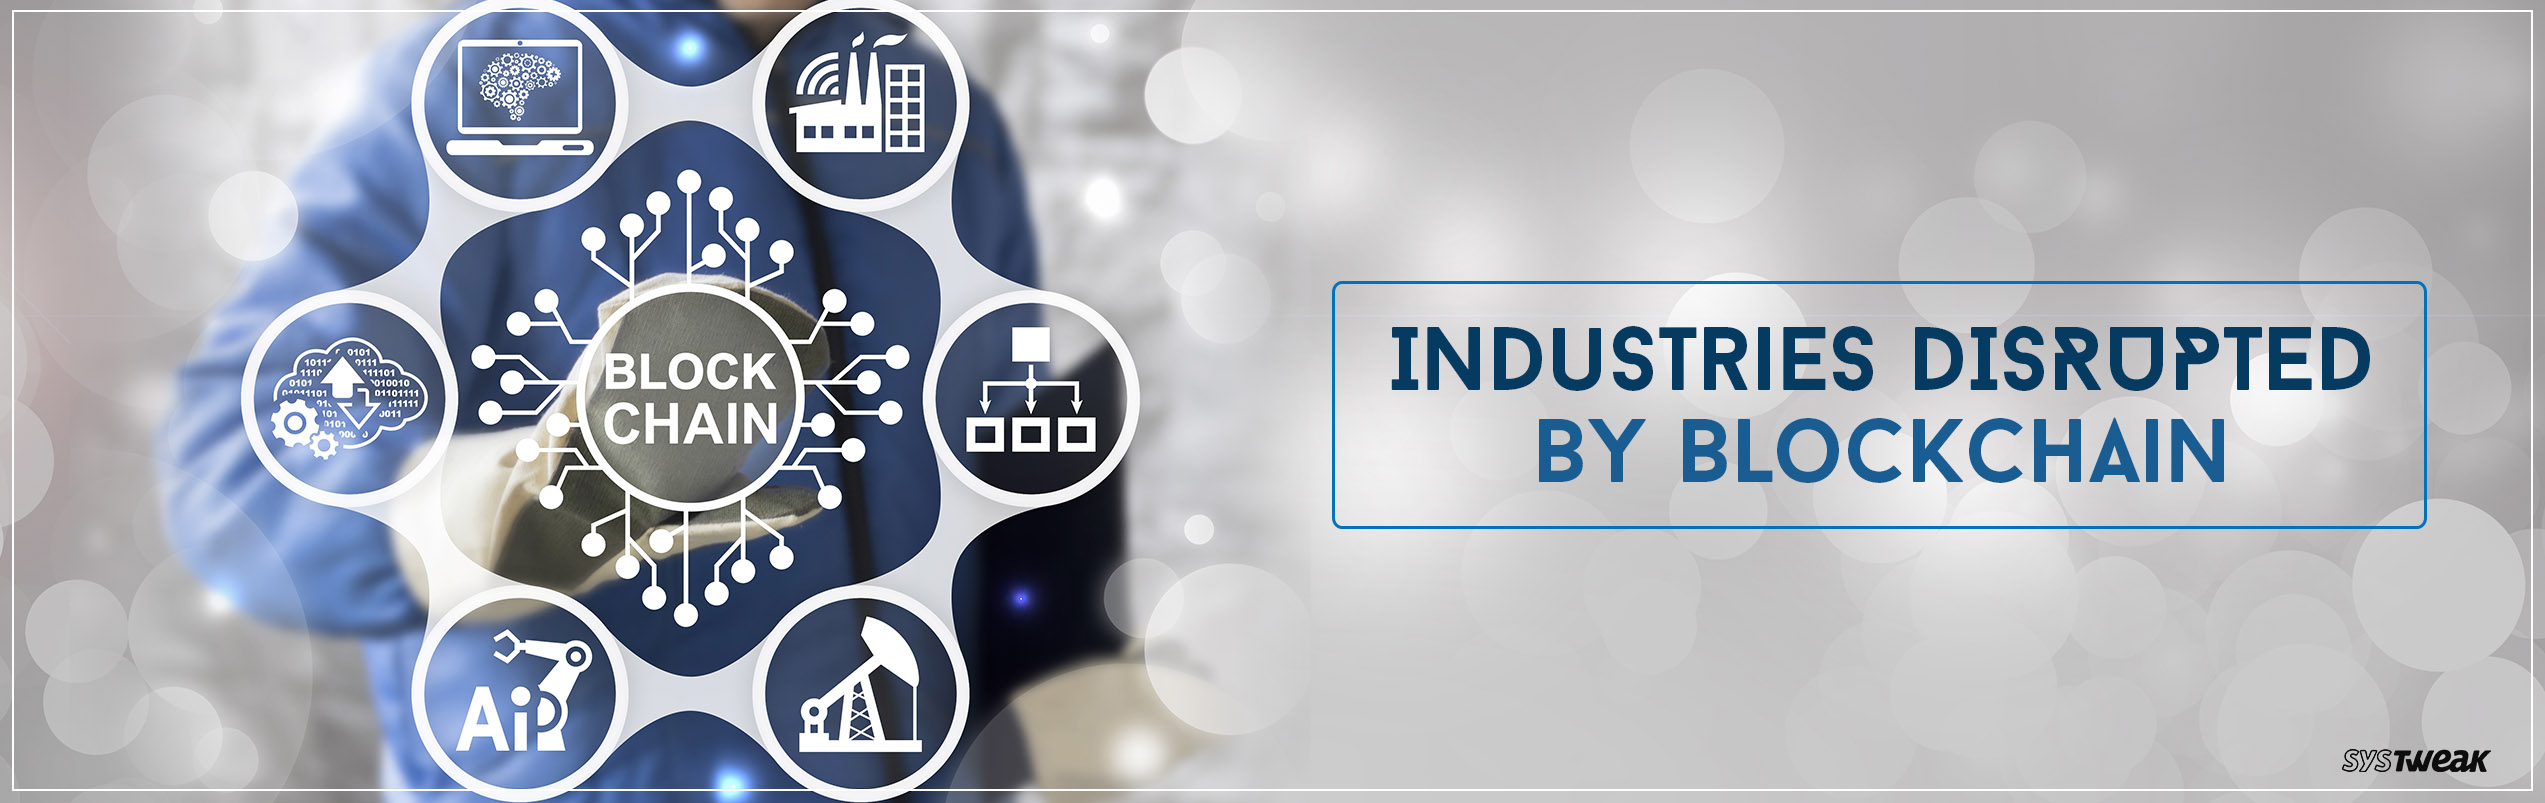 10 Industries That Changed After Introduction Of Blockchain